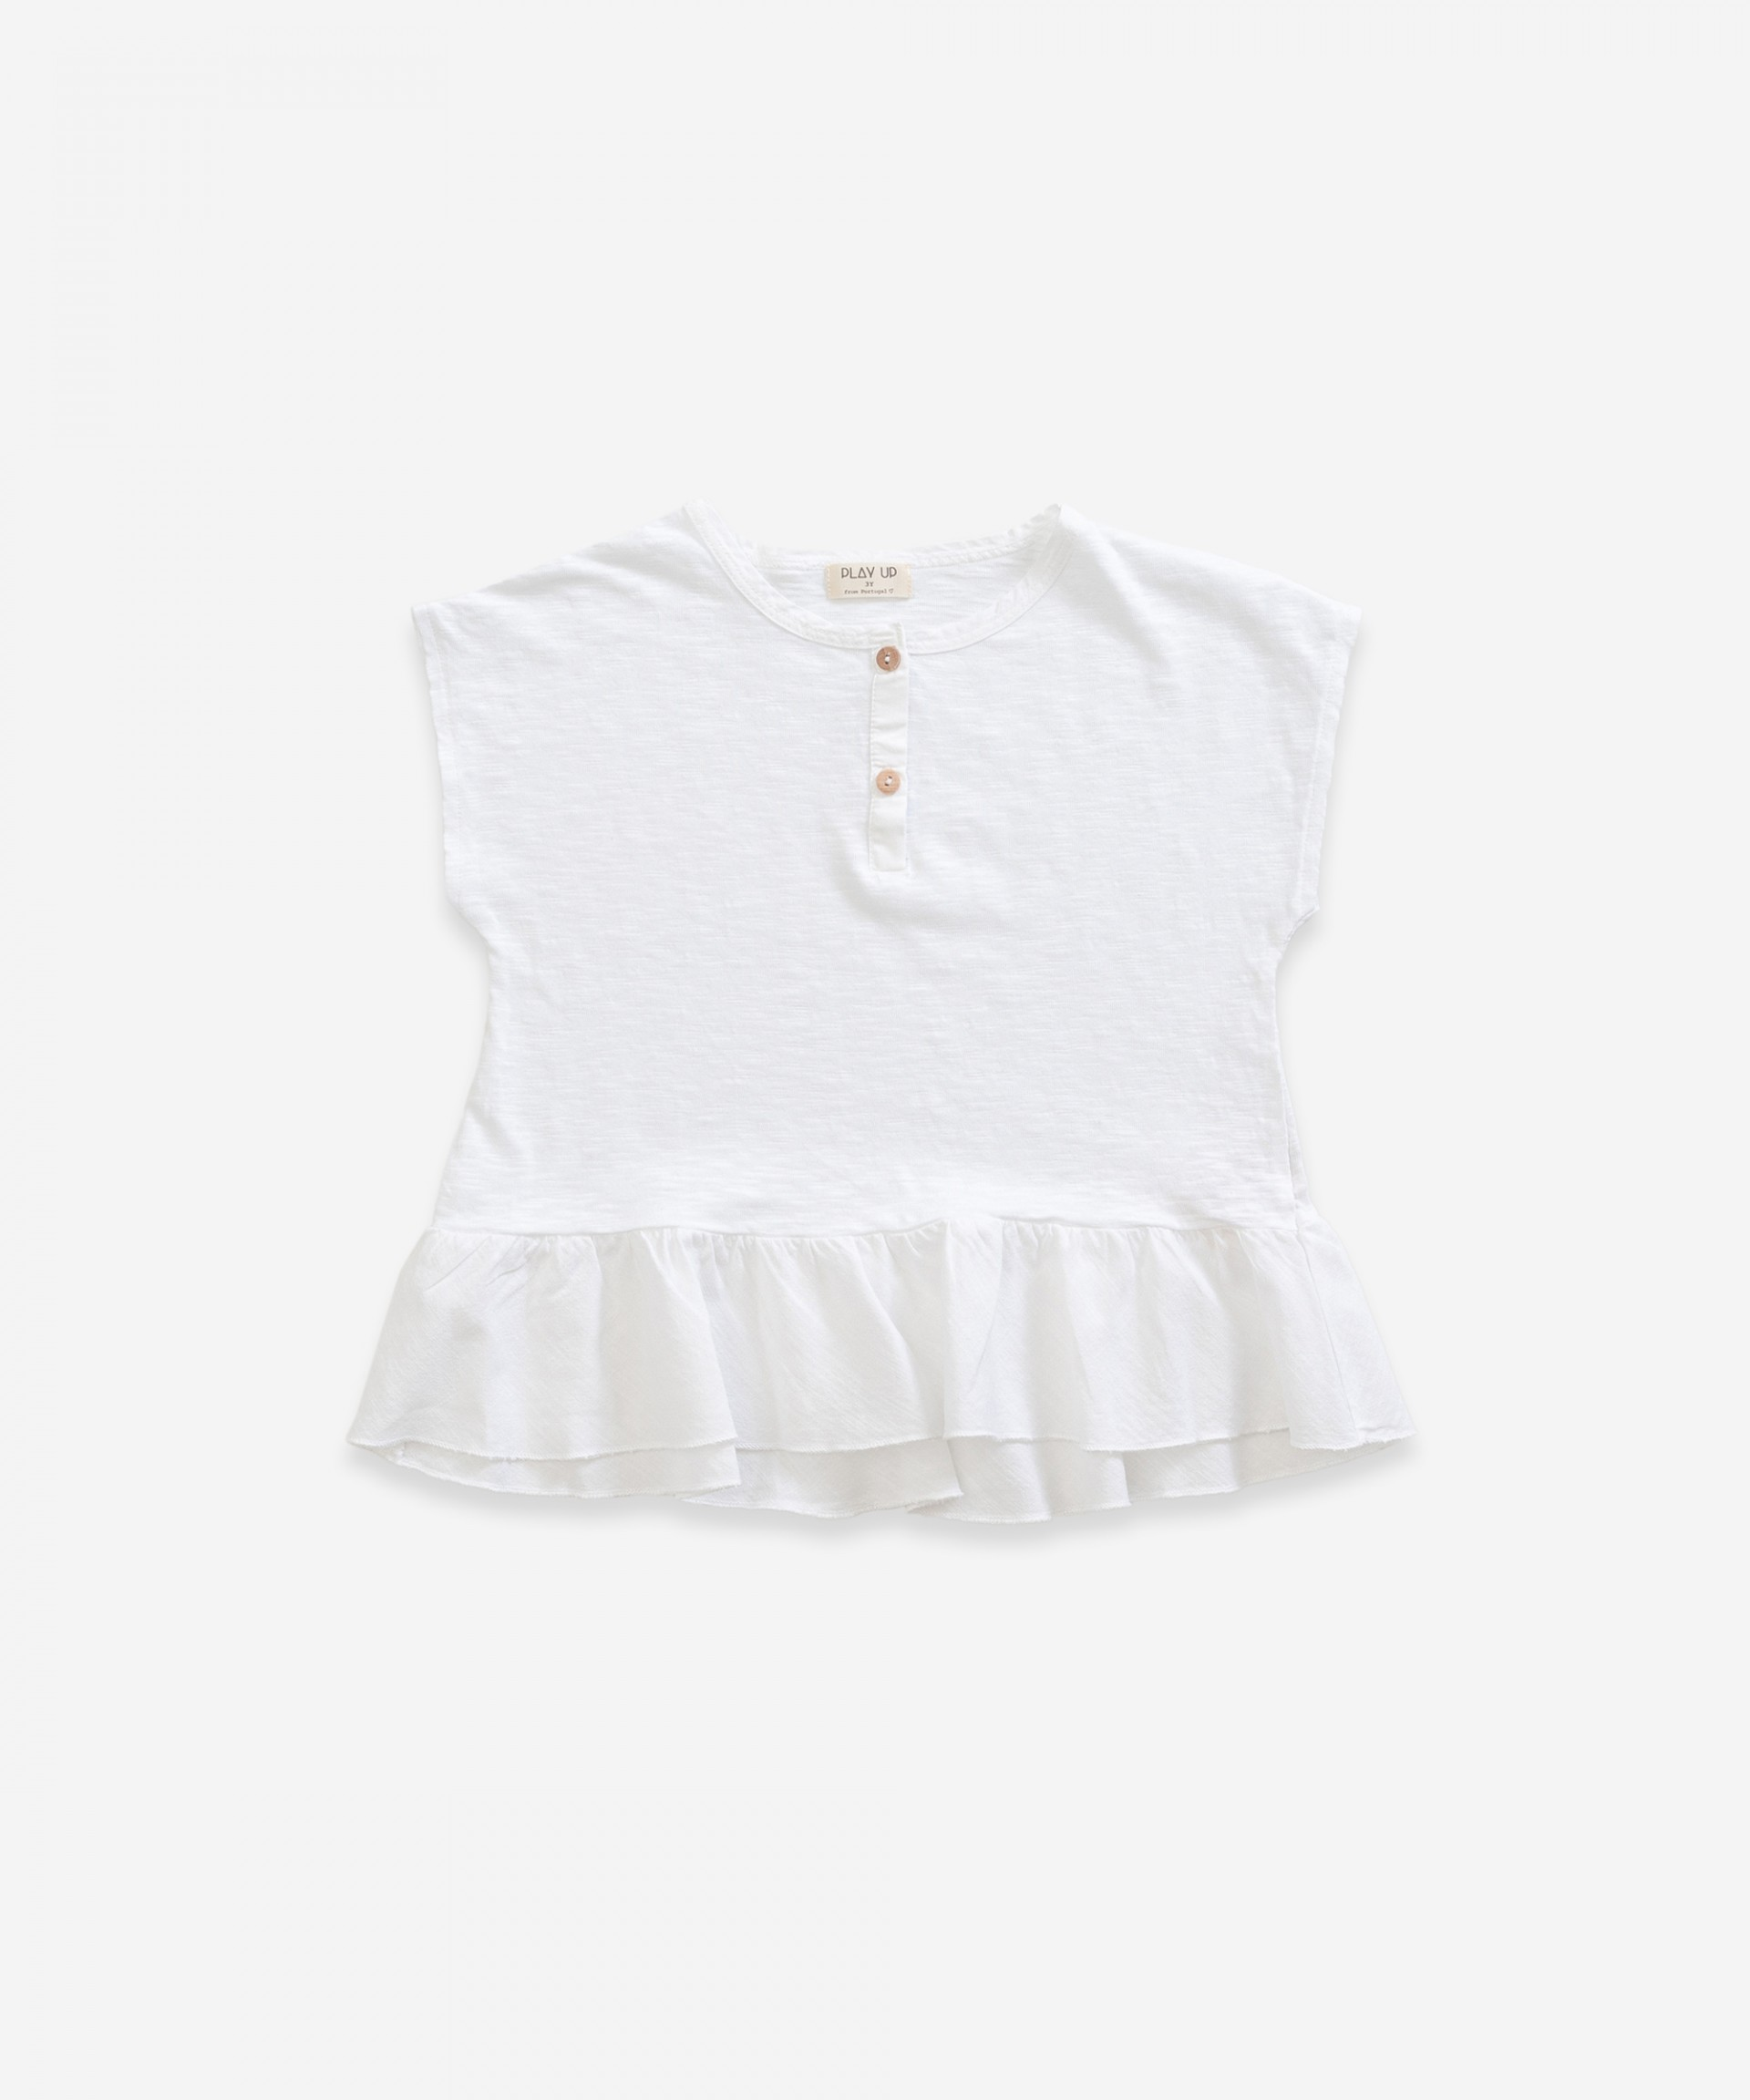 T-shirt  in organic cotton with frill | Weaving